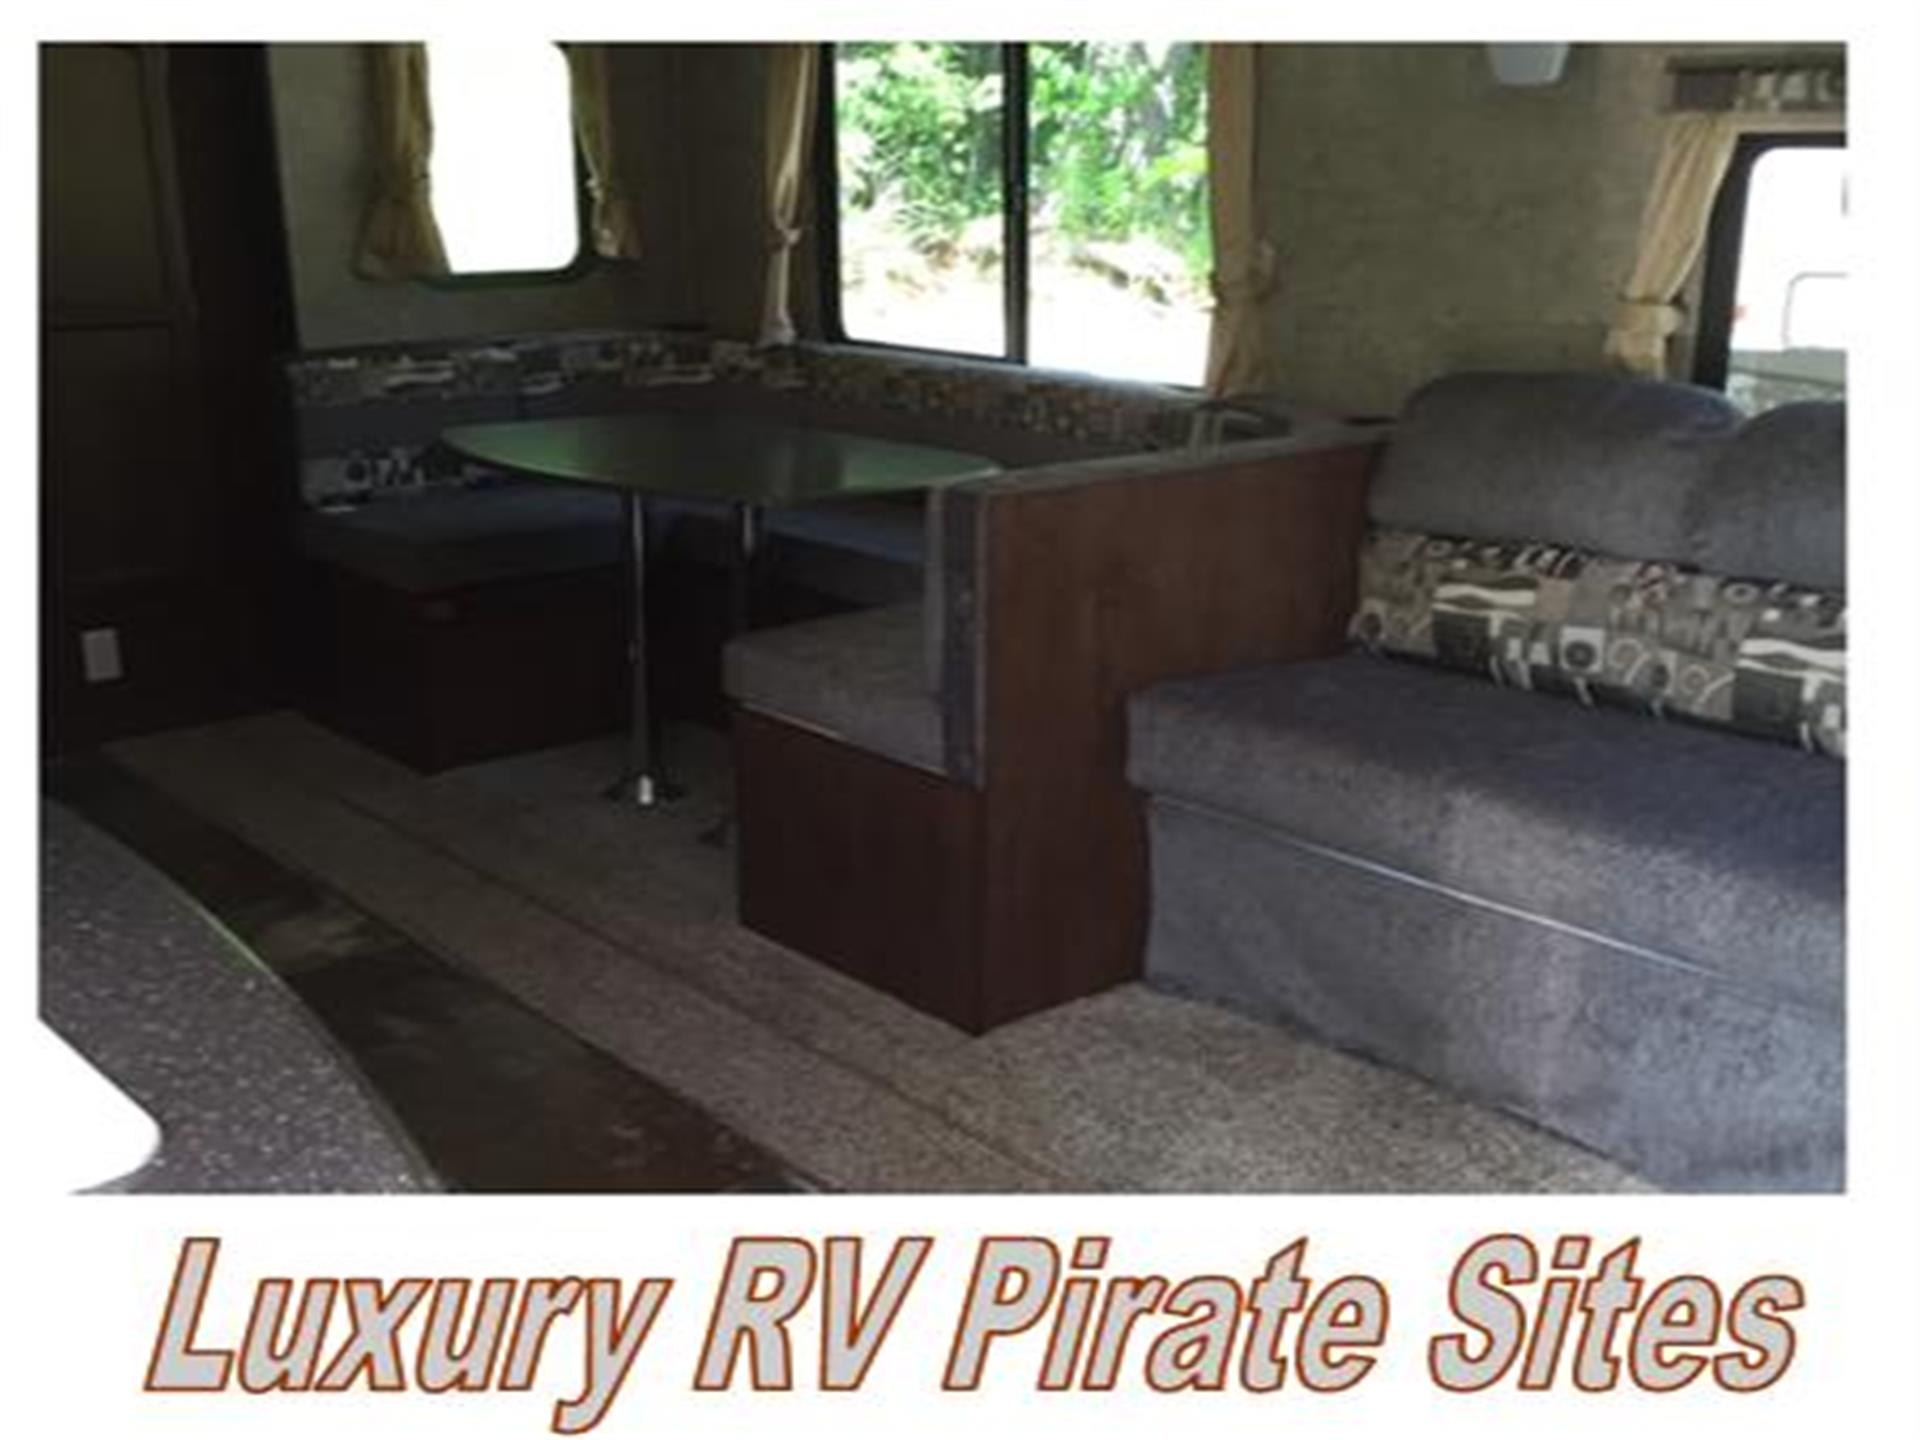 interior of a luxury rv rental with a table and couch